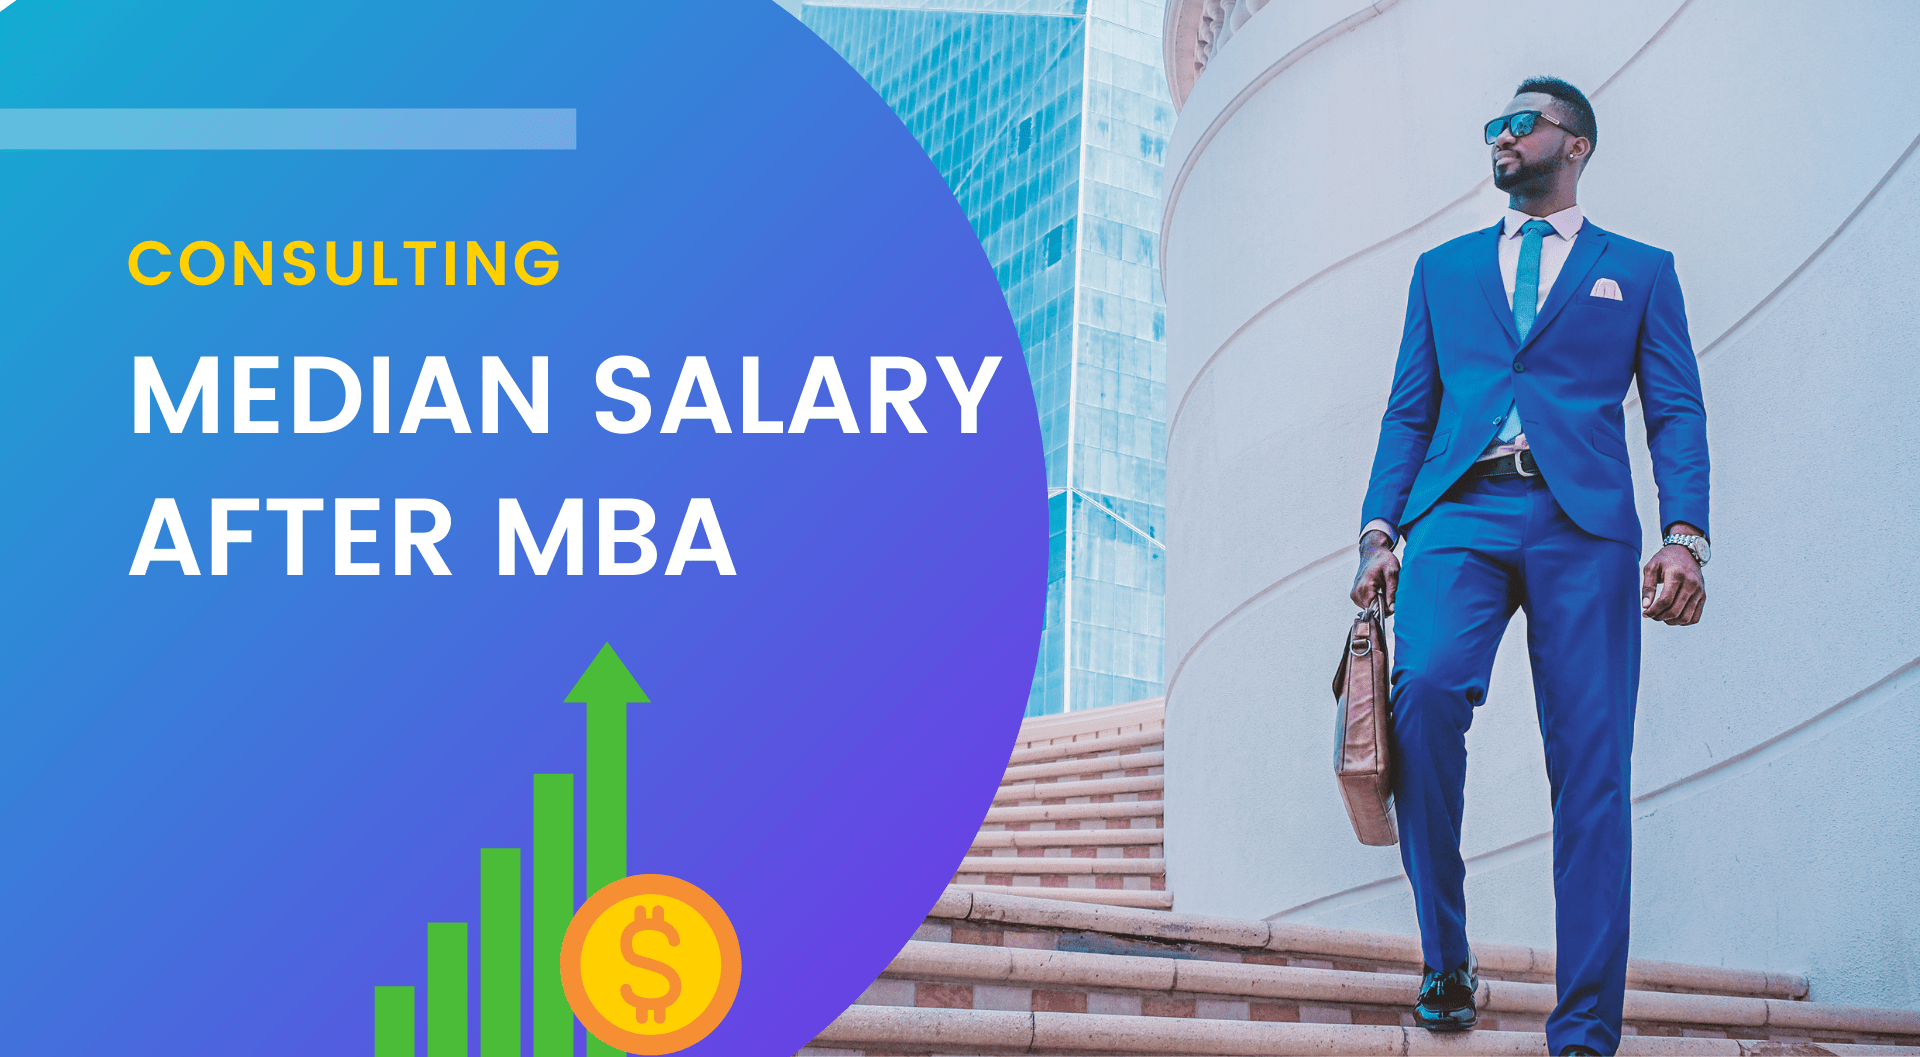 Median Salary for Consulting at the Top B-schools